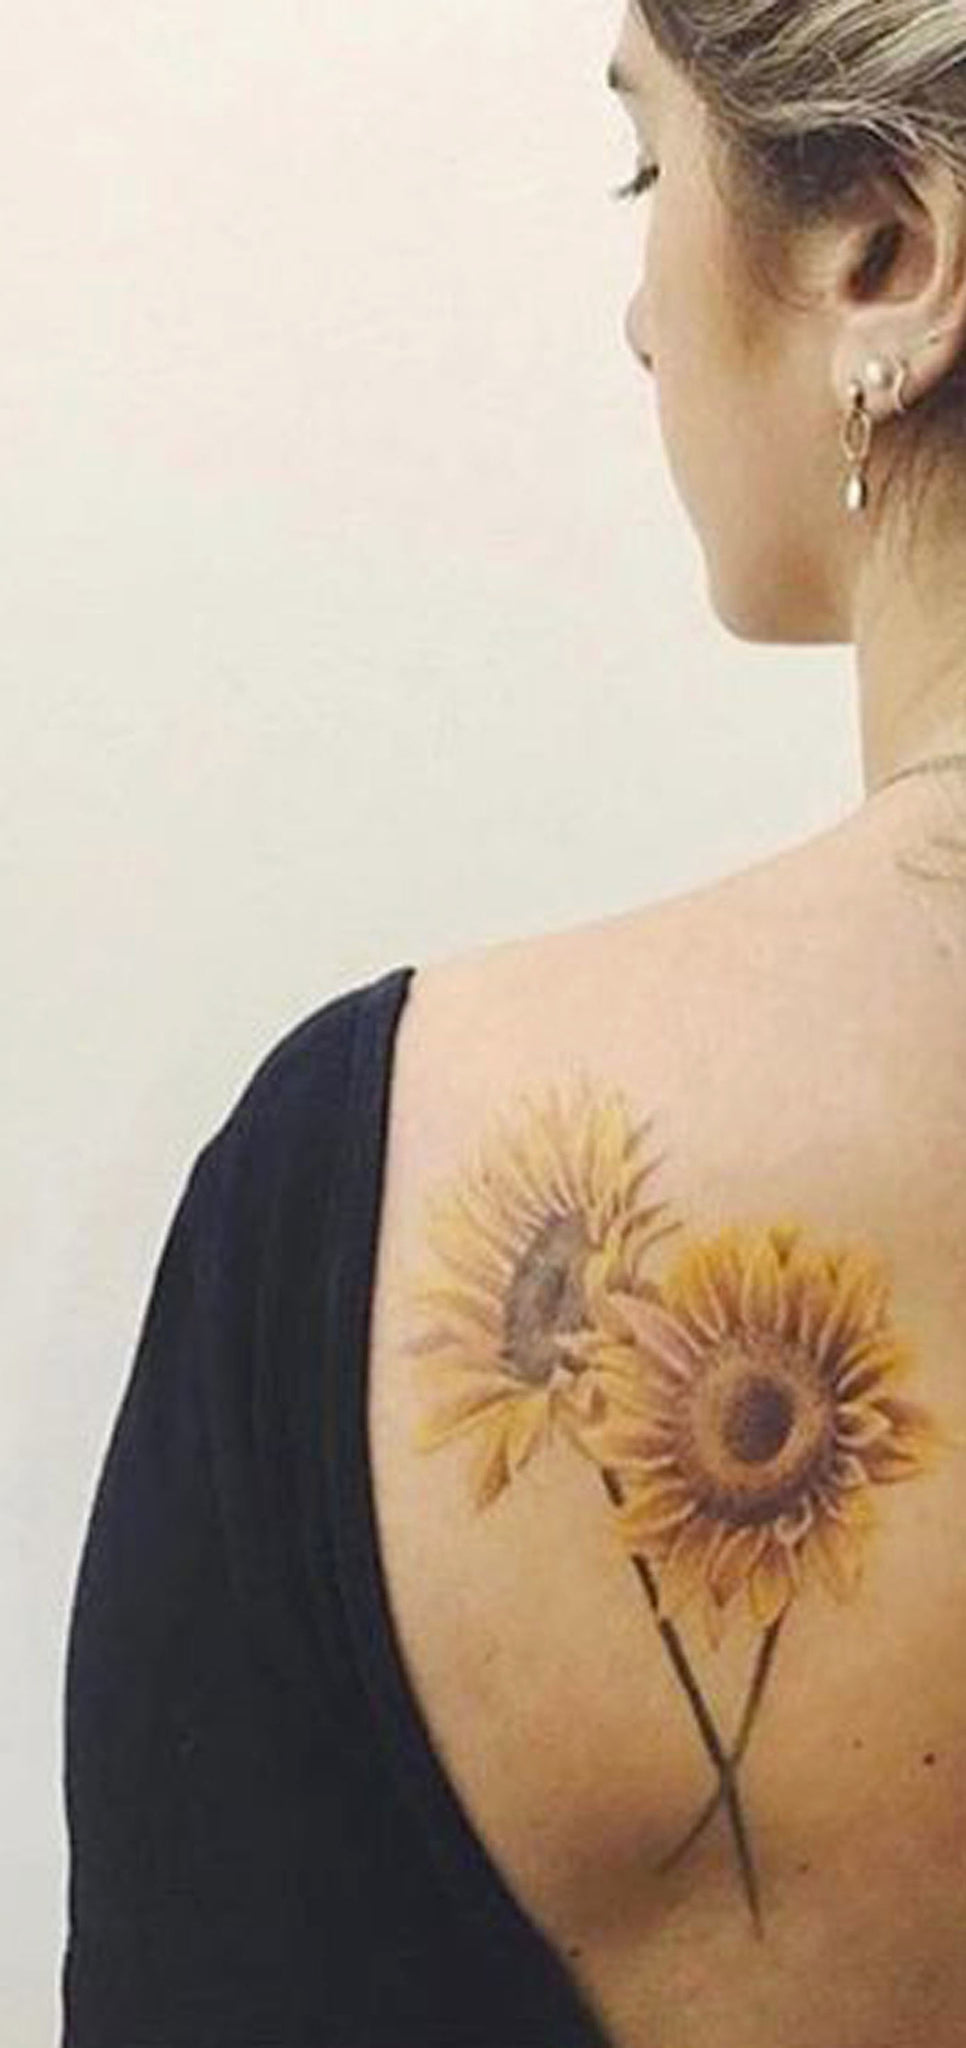 Beautiful Back Sunflower Tattoo Ideas for Women - Colorful Realistic Vintage Flower Shoulder Tat - www.MyBodiArt.com #tattoos